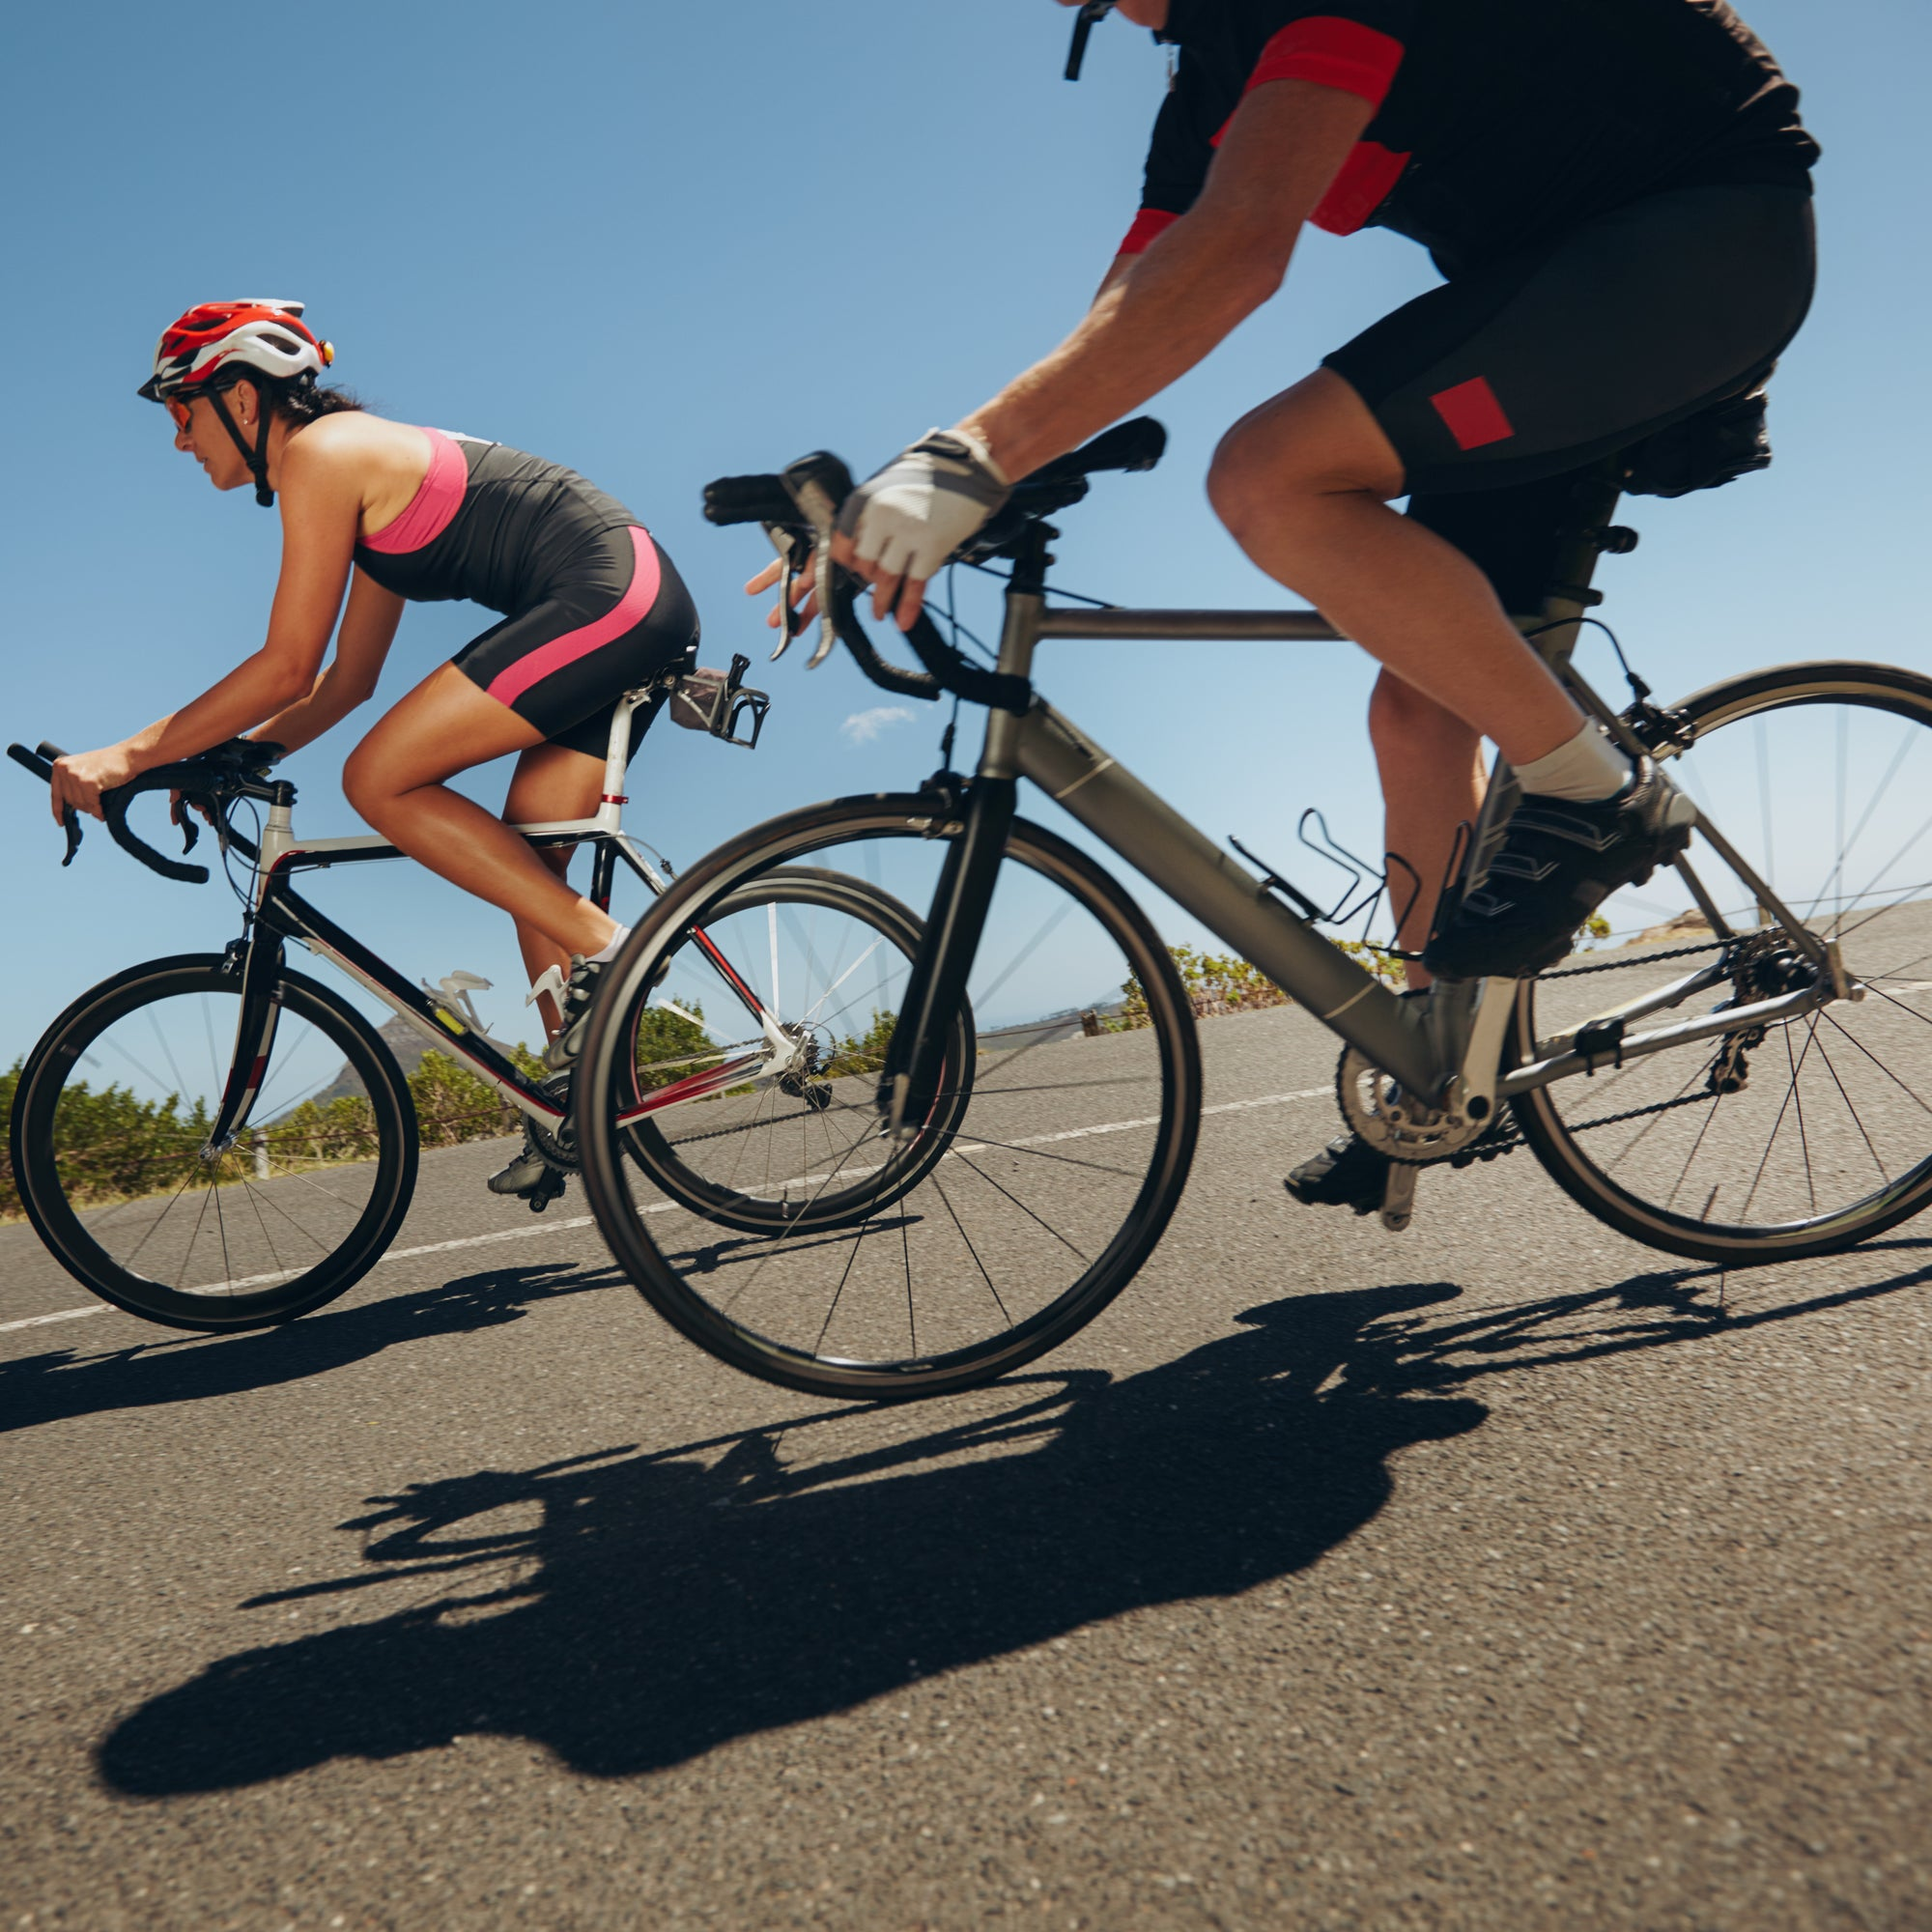 7 Steps To Lose Weight By Cycling